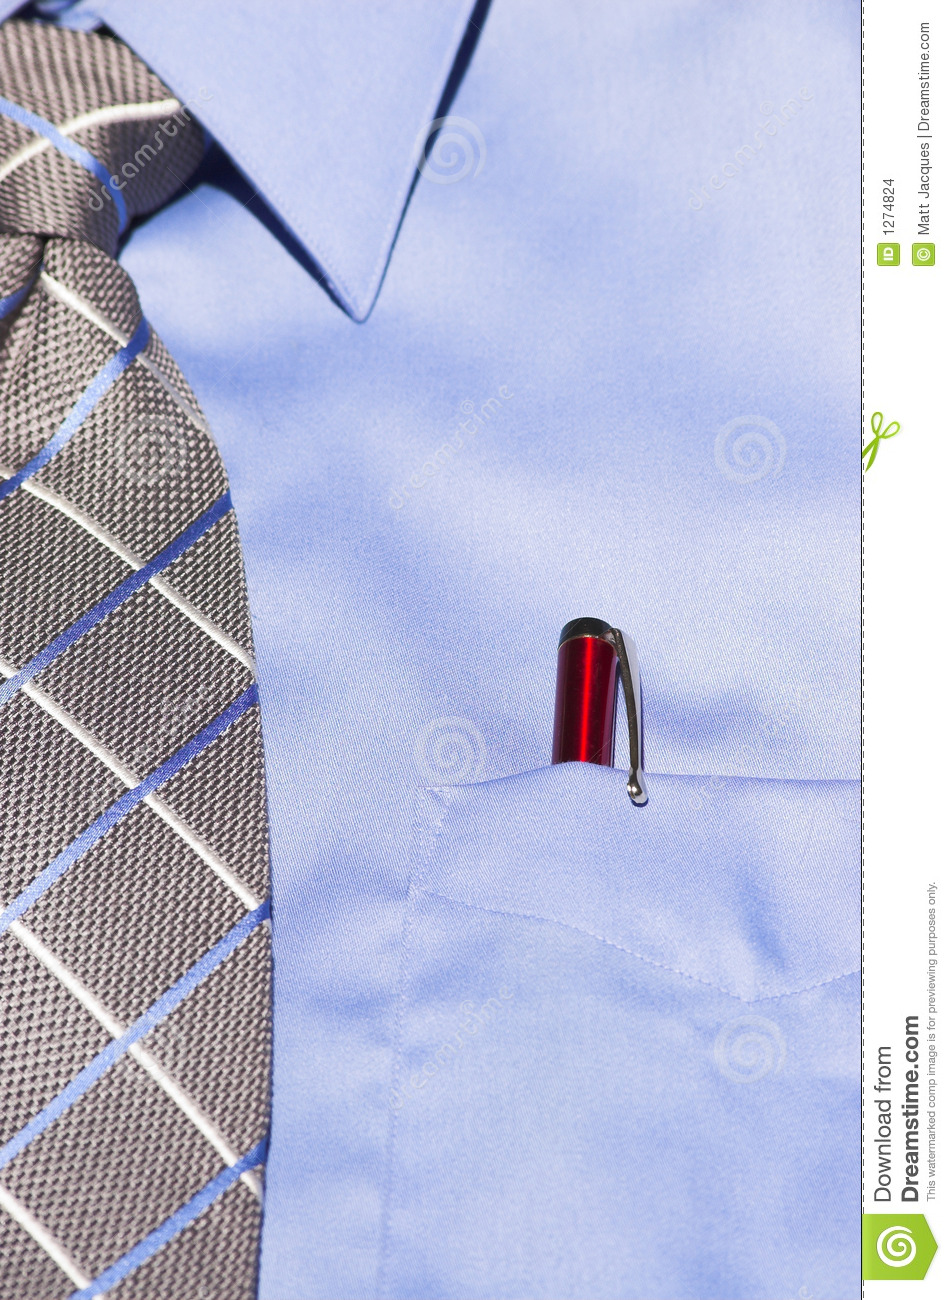 Blue dress shirt with tie and red pen